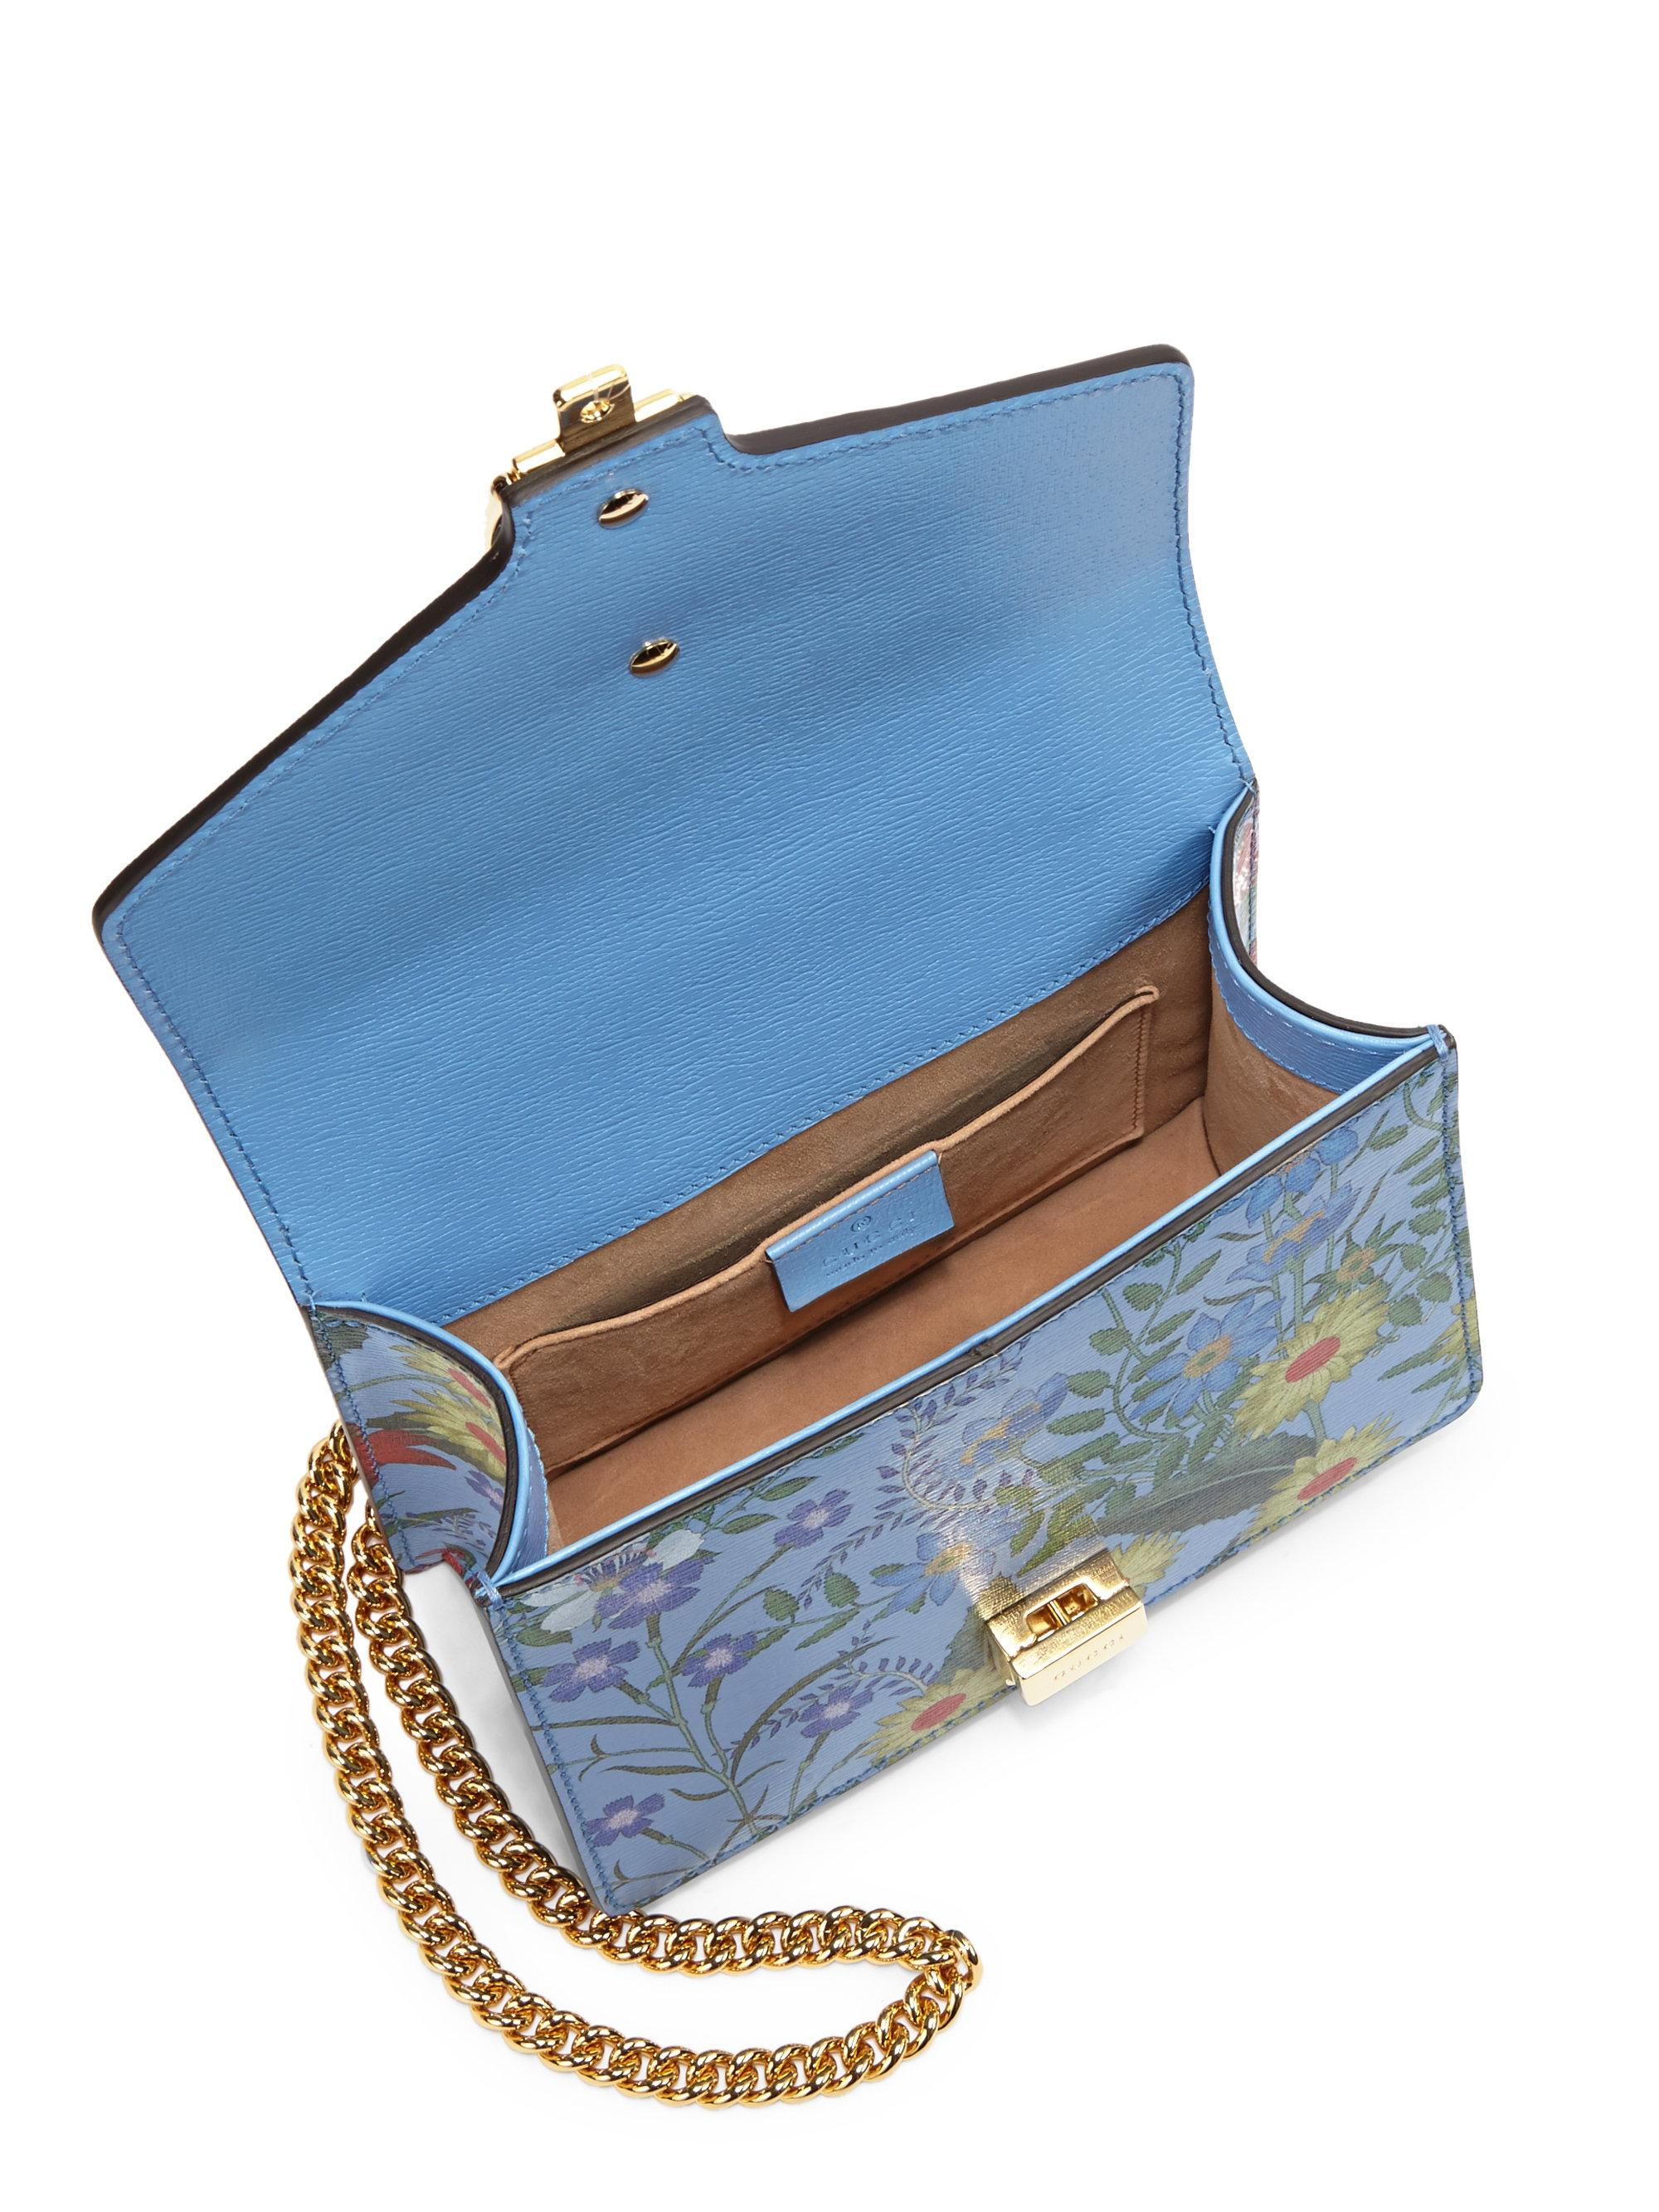 563c22cc2df Lyst - Gucci Sylvie Flora Leather Mini Chain Shoulder Bag in Blue